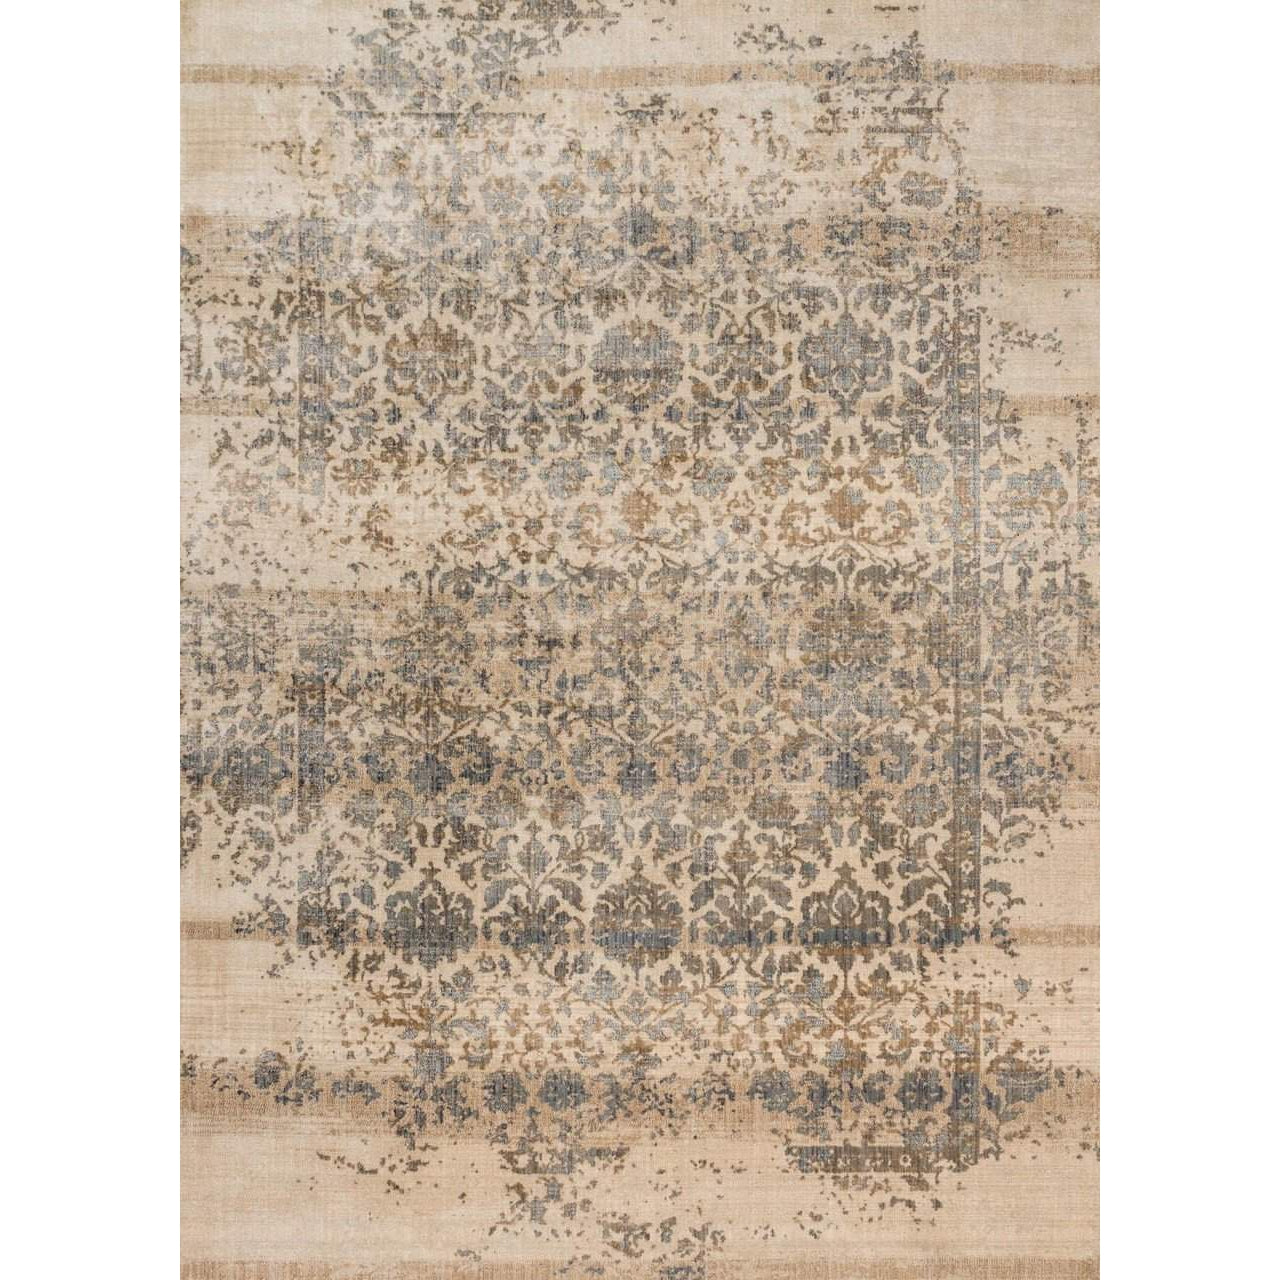 Joanna Gaines Rug of Magnolia Home Rug Collection - Kivi Collection - Ivory / Quarry - Blue Hand Home